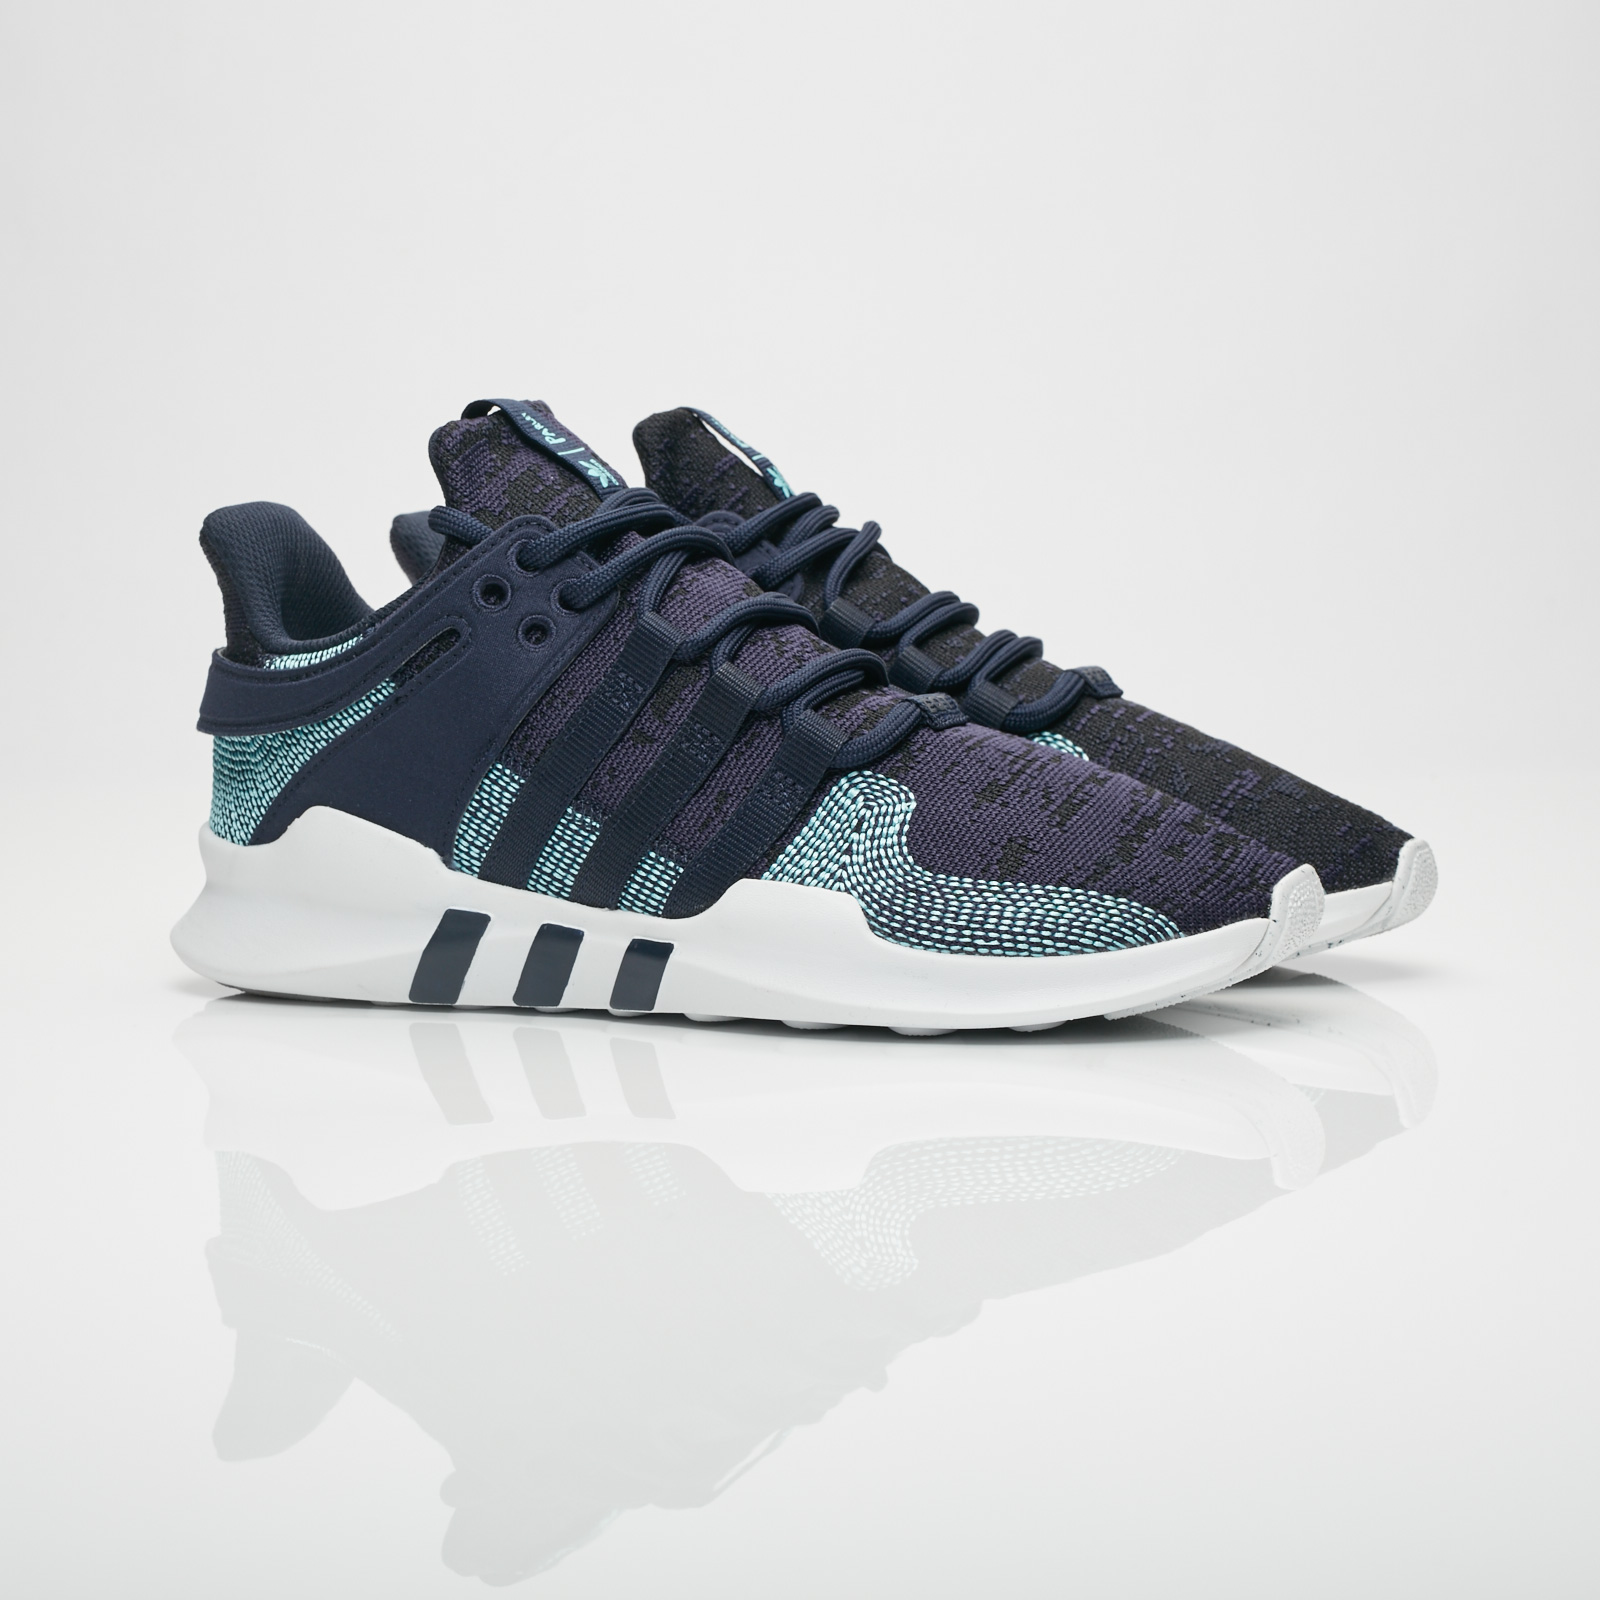 new style d9127 3d519 adidas EQT Support ADV CK Parley - Cq0299 - Sneakersnstuff ...